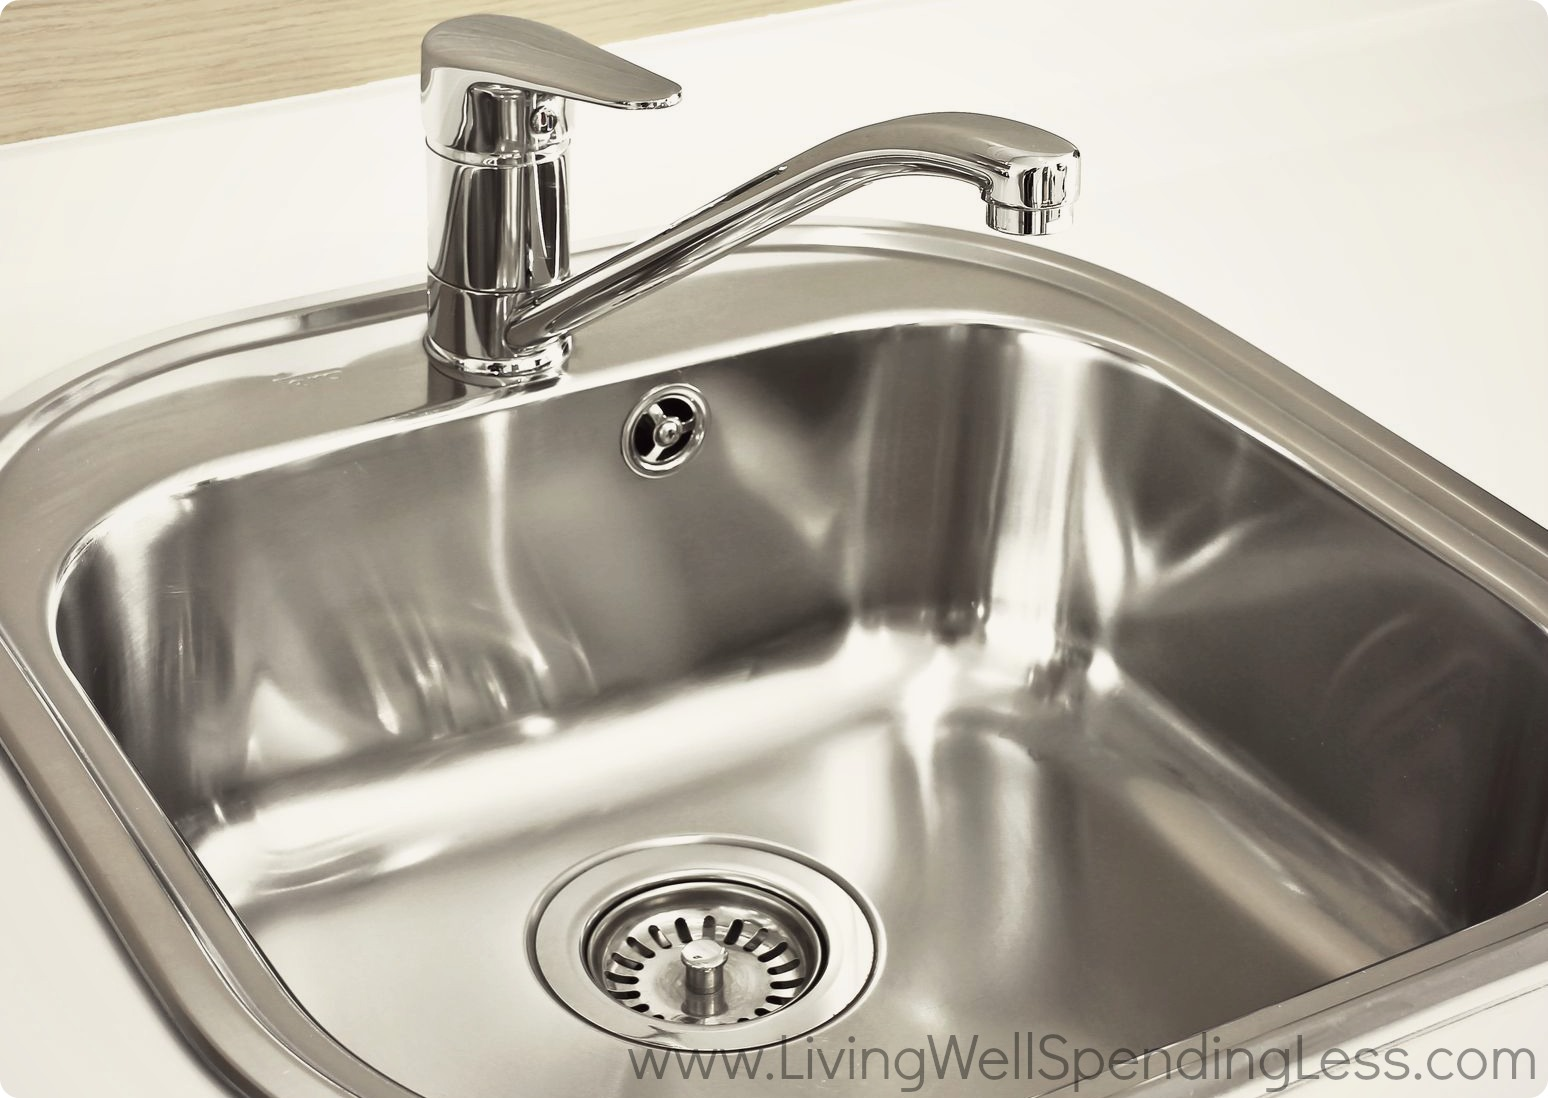 Clean kitchen sink living well spending less for How to clean bathroom drain